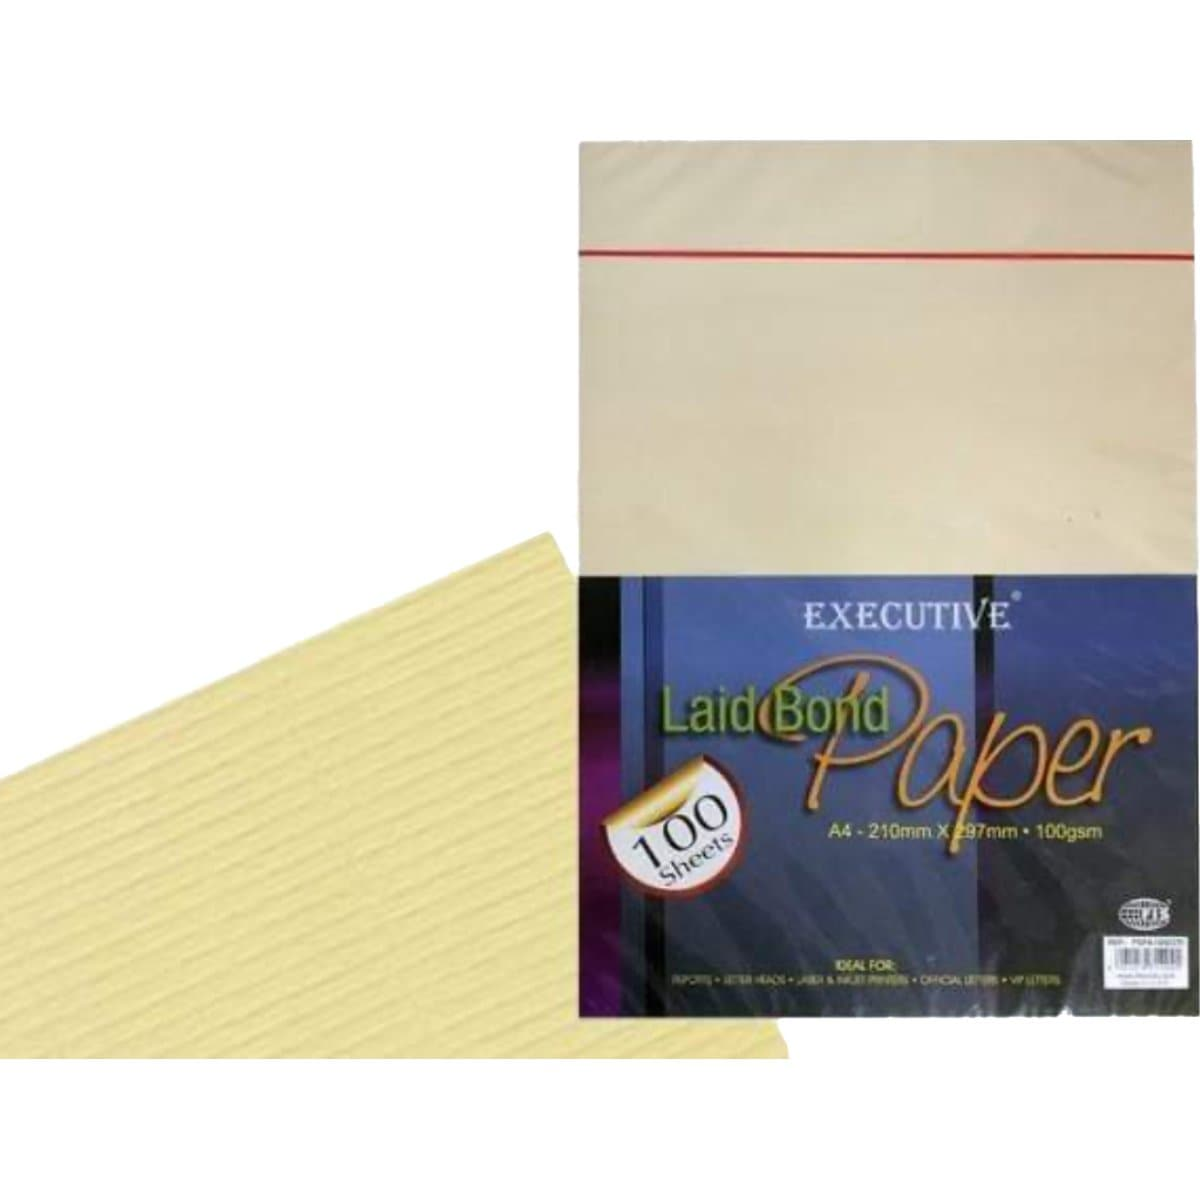 FIS Executive Laid Bond Paper A4, 100gsm, 100sheets/pack, Cream